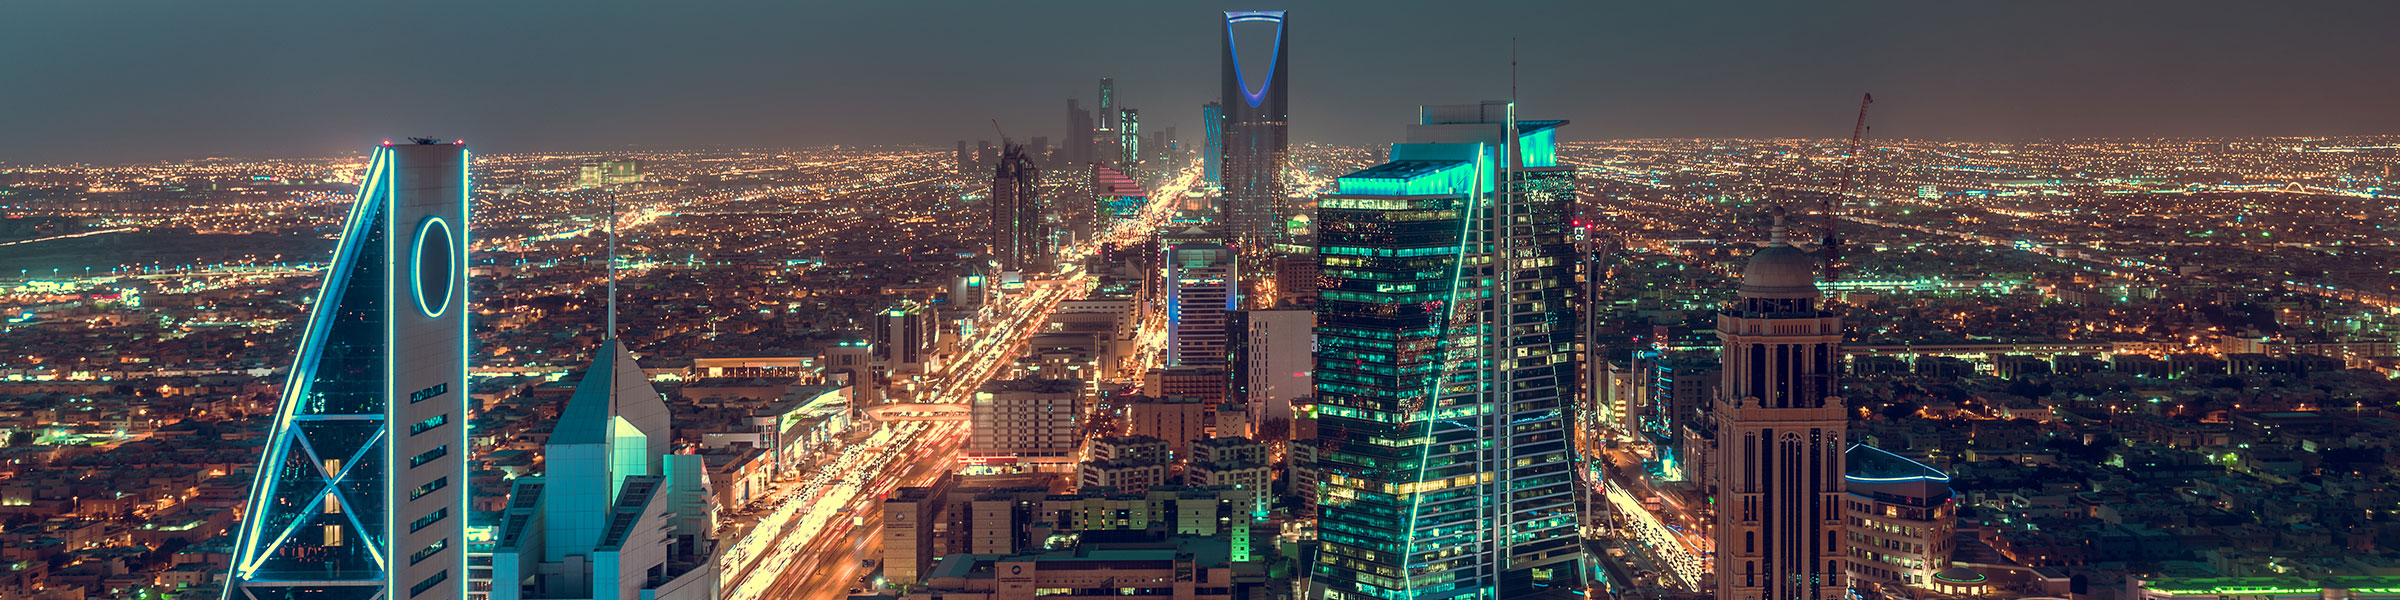 Saudi Arabia Riyadh landscape at night